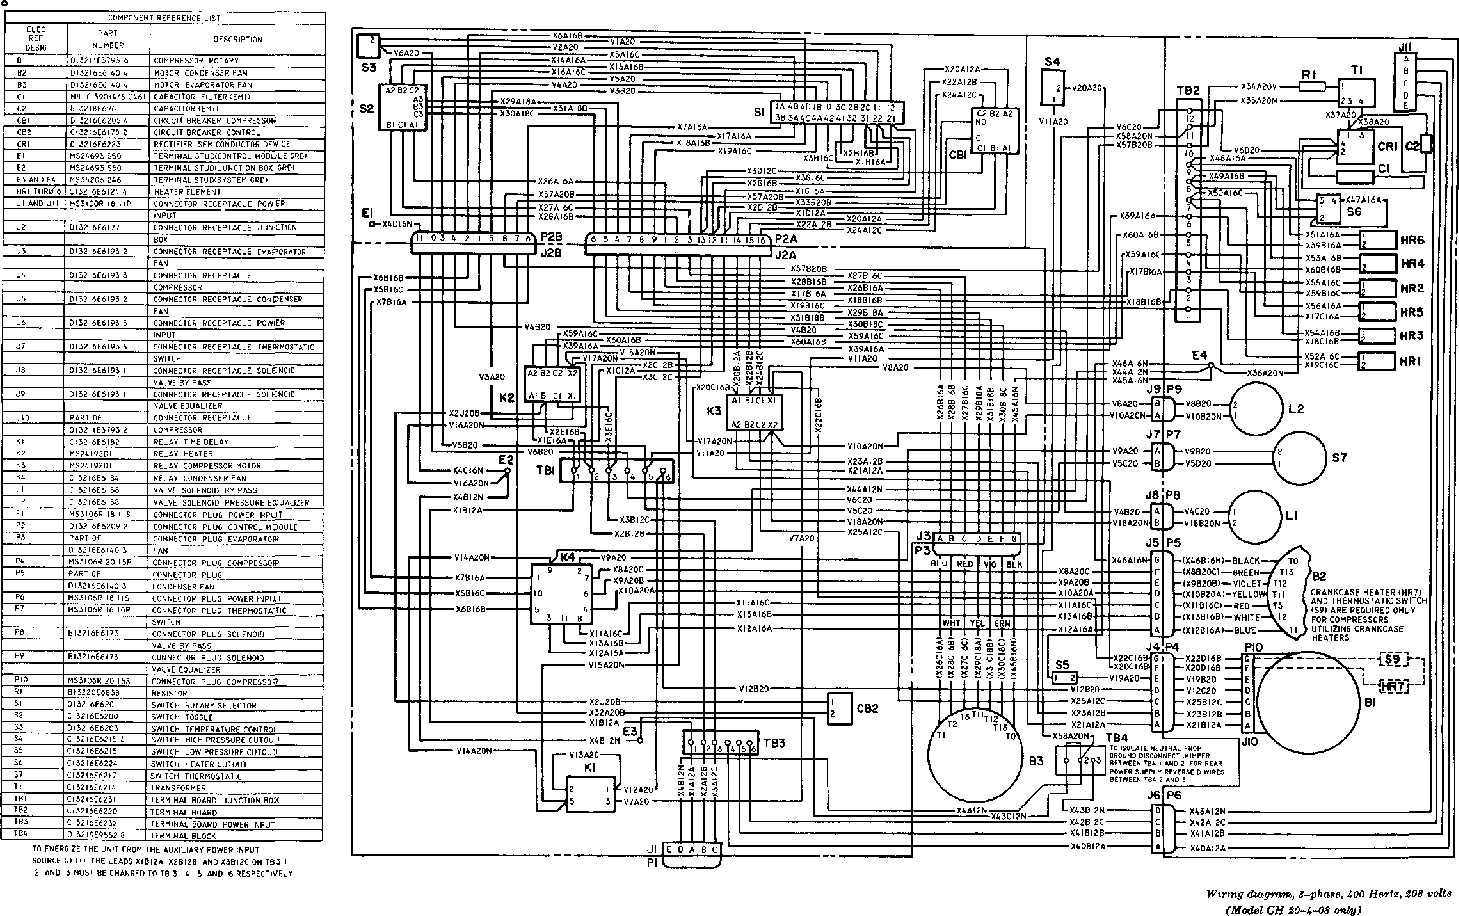 Building 3 Phase Wiring Diagram Great Design Of Three X Y Z Refrigeration Single Compressor 208 9 Lead Motor